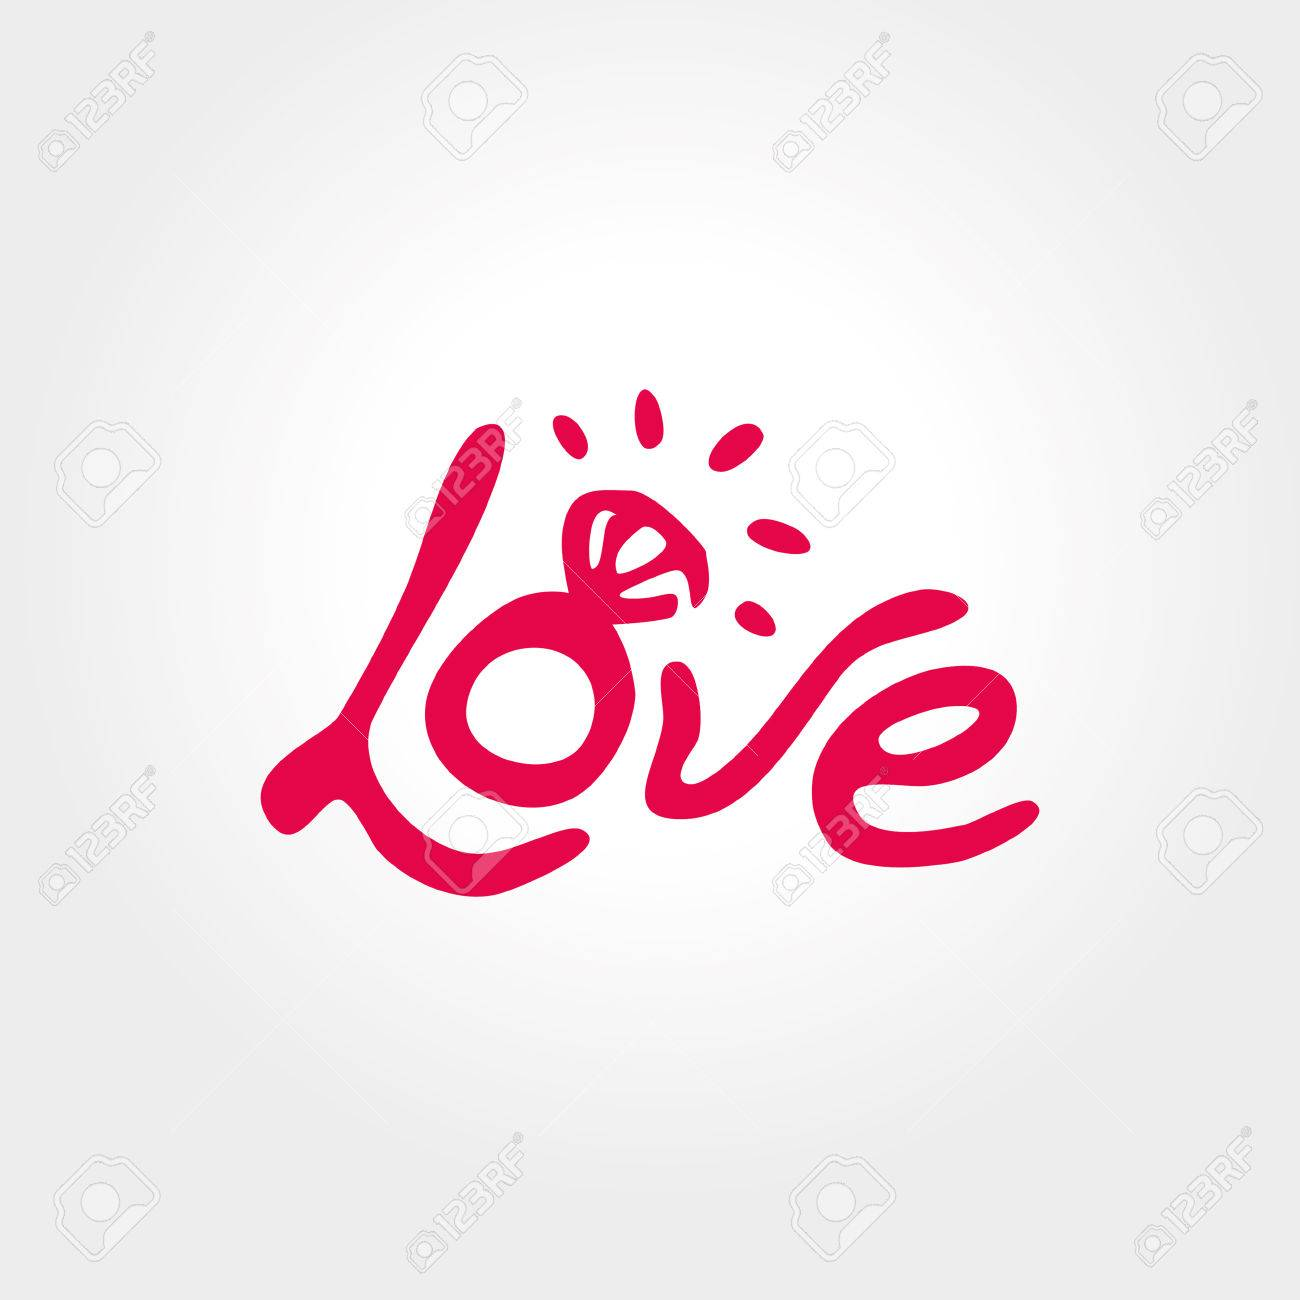 Love, ring, freehand letters love - 55171846